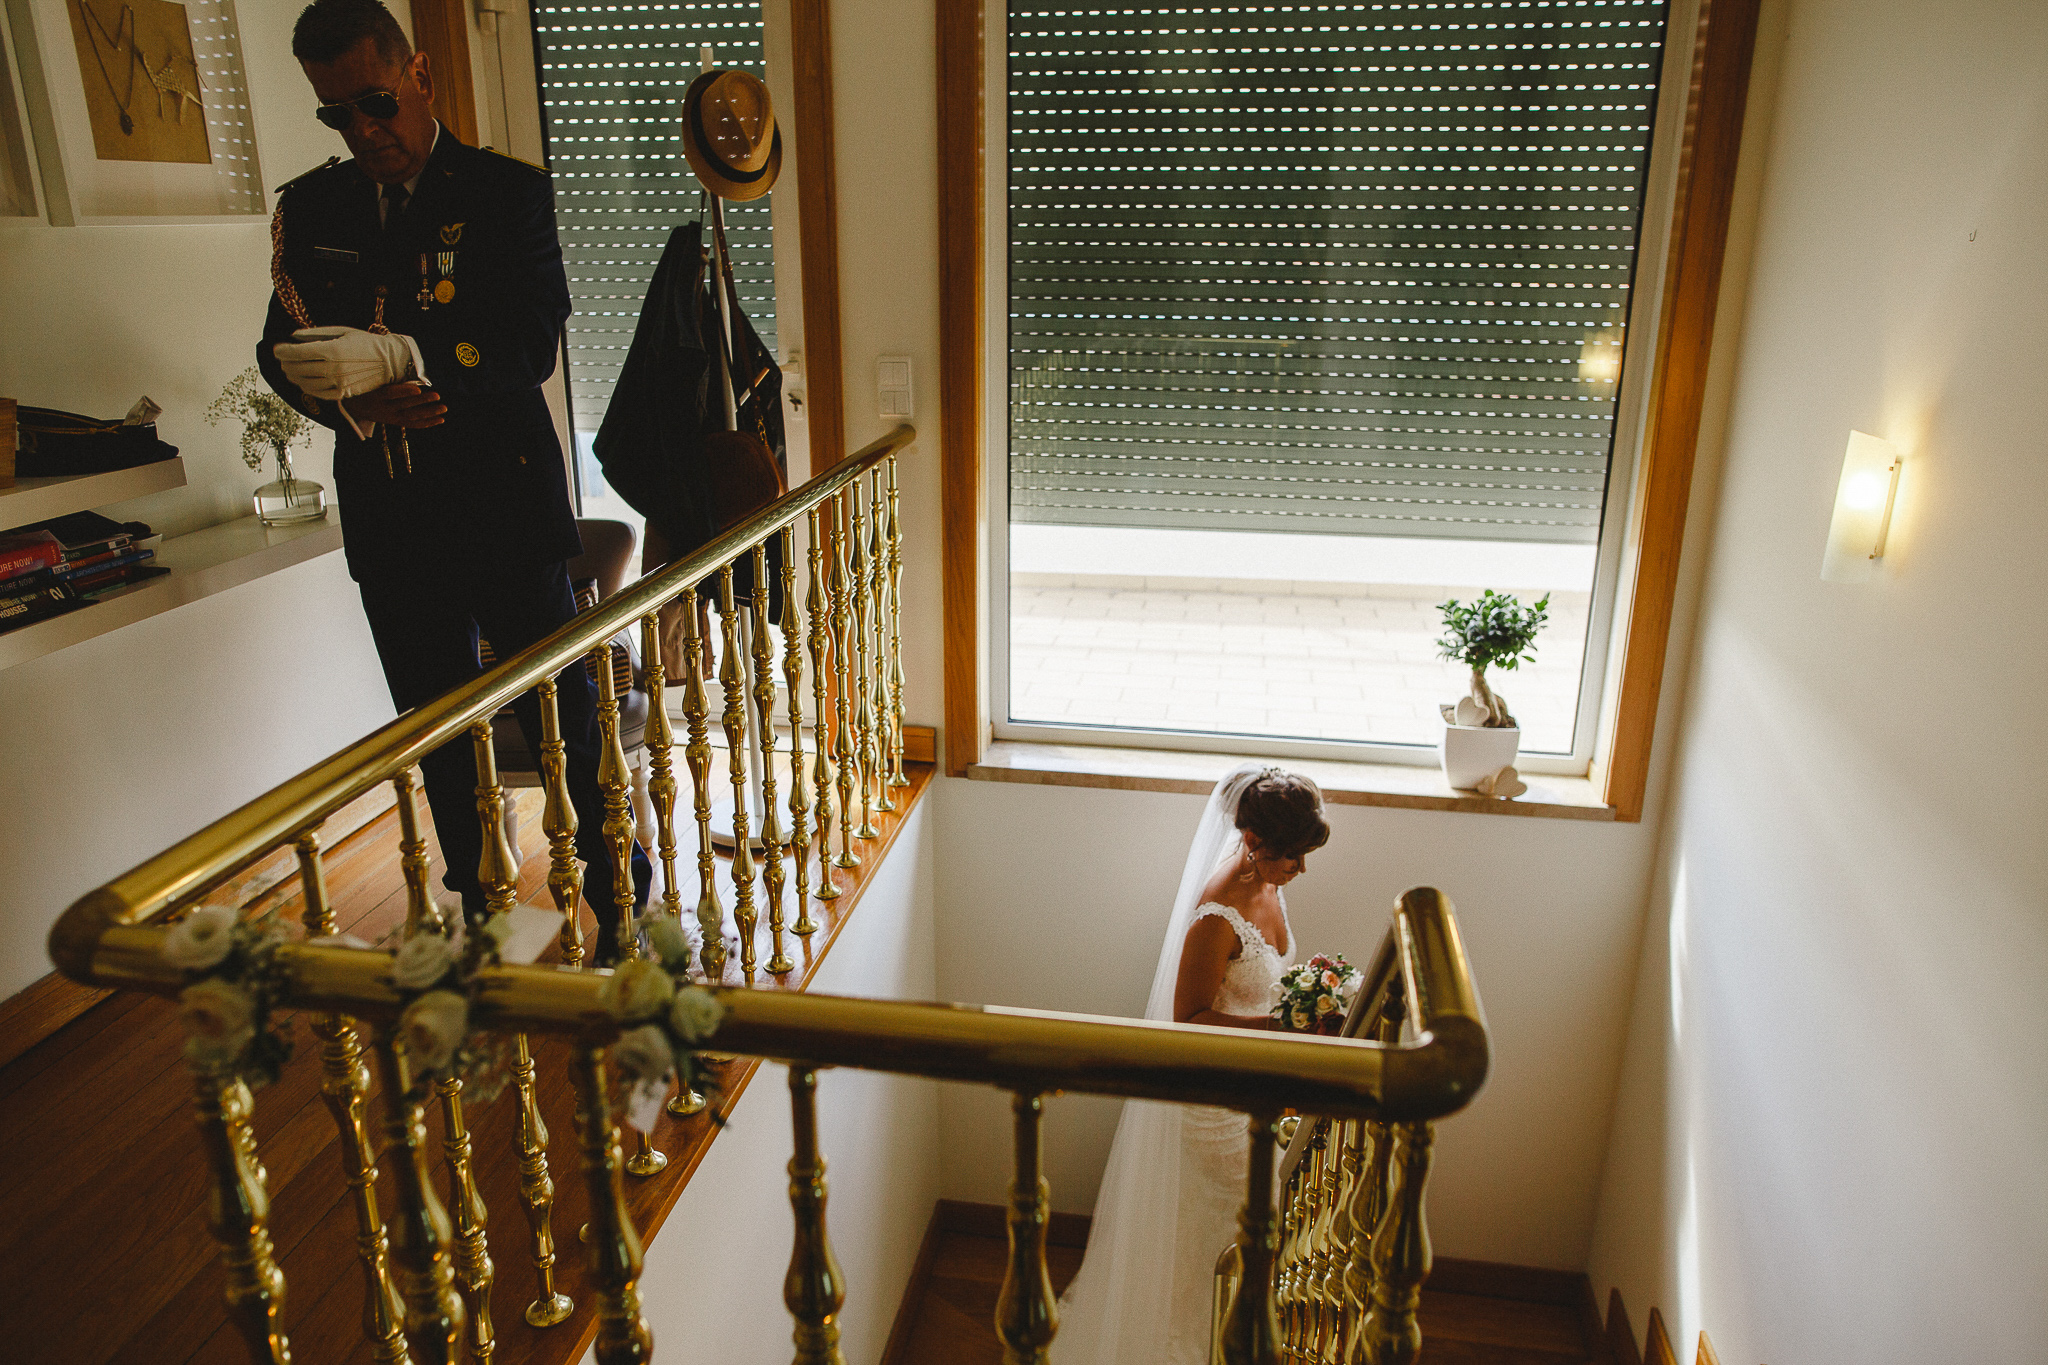 Bride coming upstairs while father of the bride is getting ready to leave the house